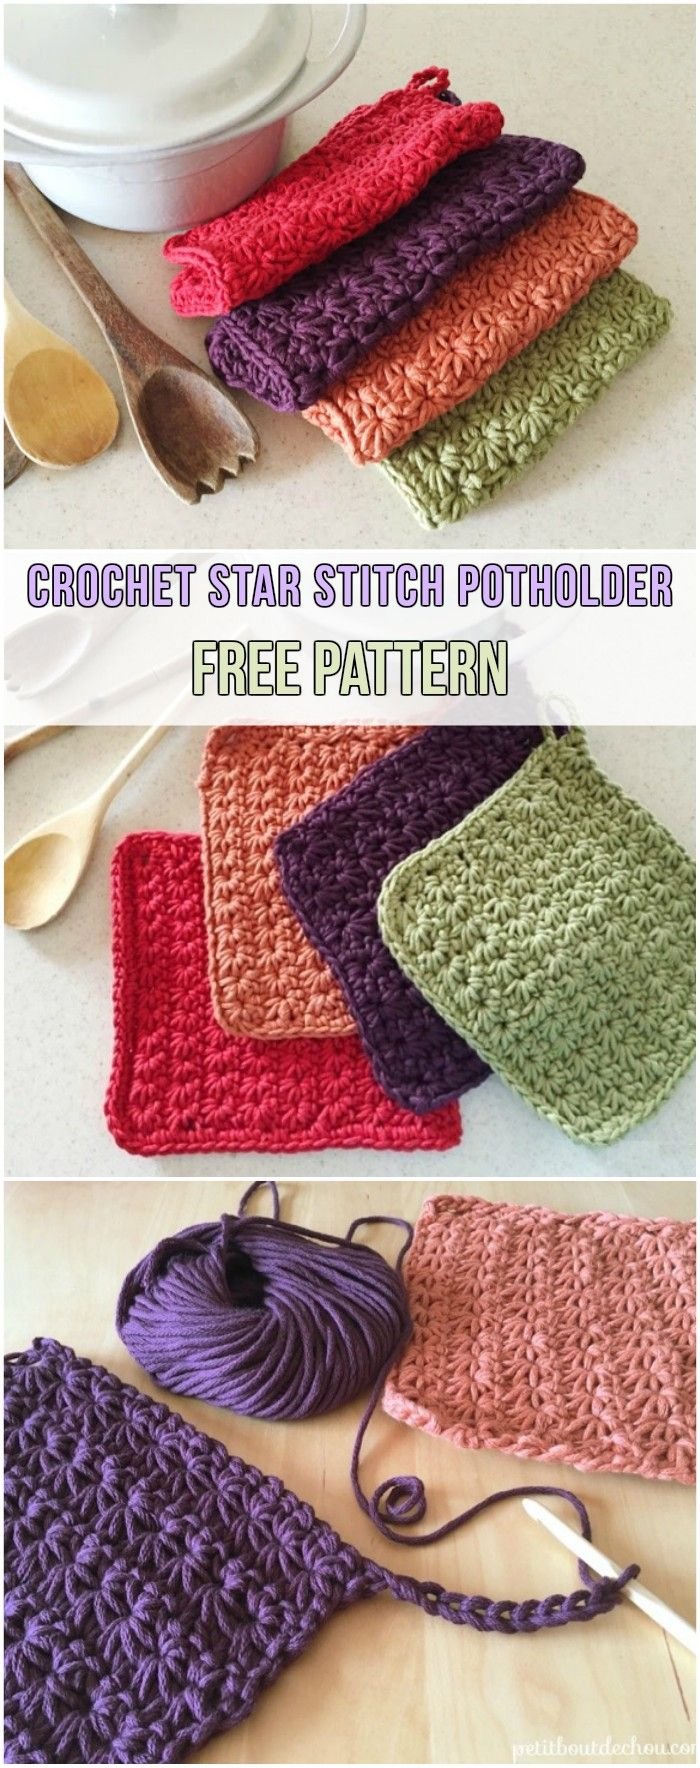 4305 best Crochet and Knit images on Pinterest | Amigurumi patterns ...